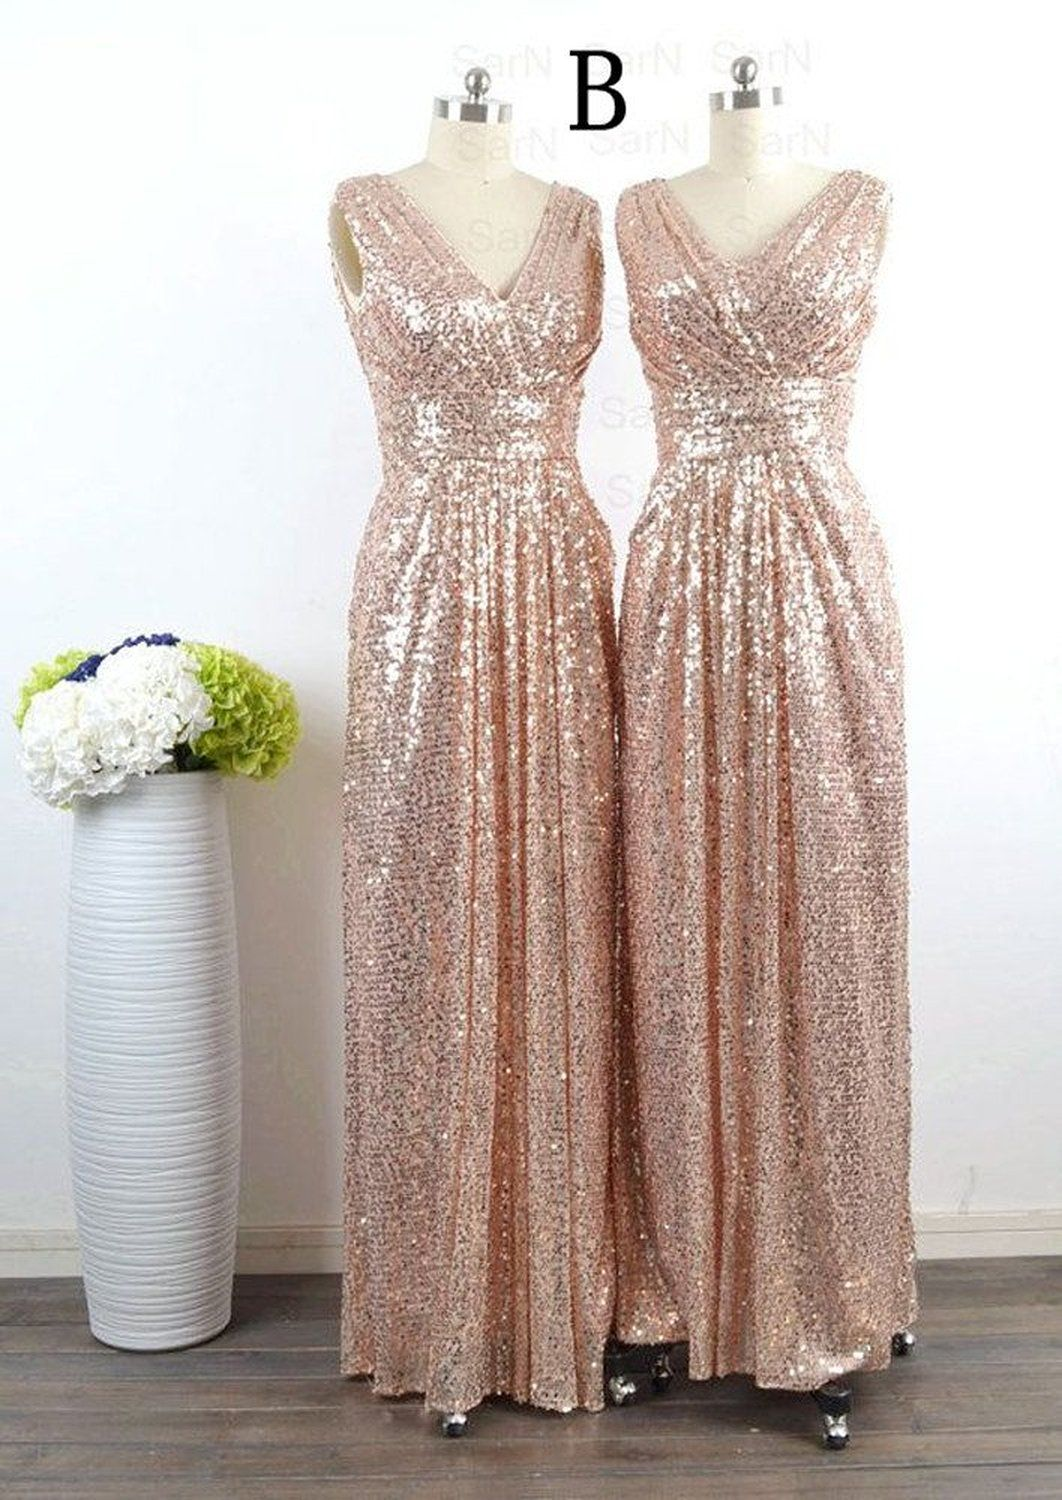 LuckyHouses Women s Rose Gold Sequins Bridesmaid Party Prom Dress ... 012835d0b5ca